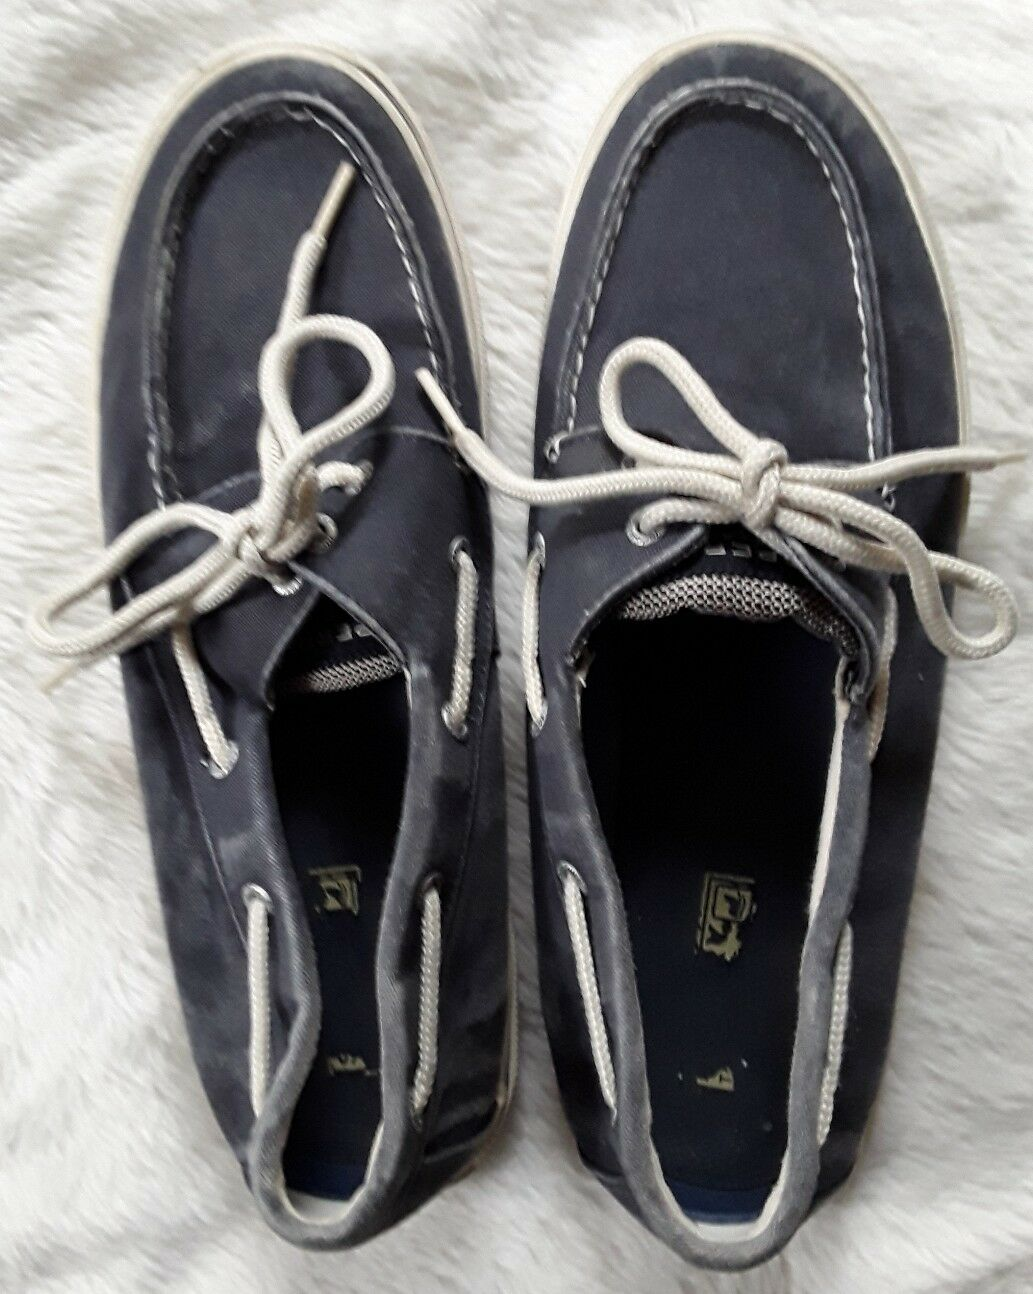 Sperry Uomo Denim Blue Top Boat Slider Boat Top Shoes Size 11M cda458